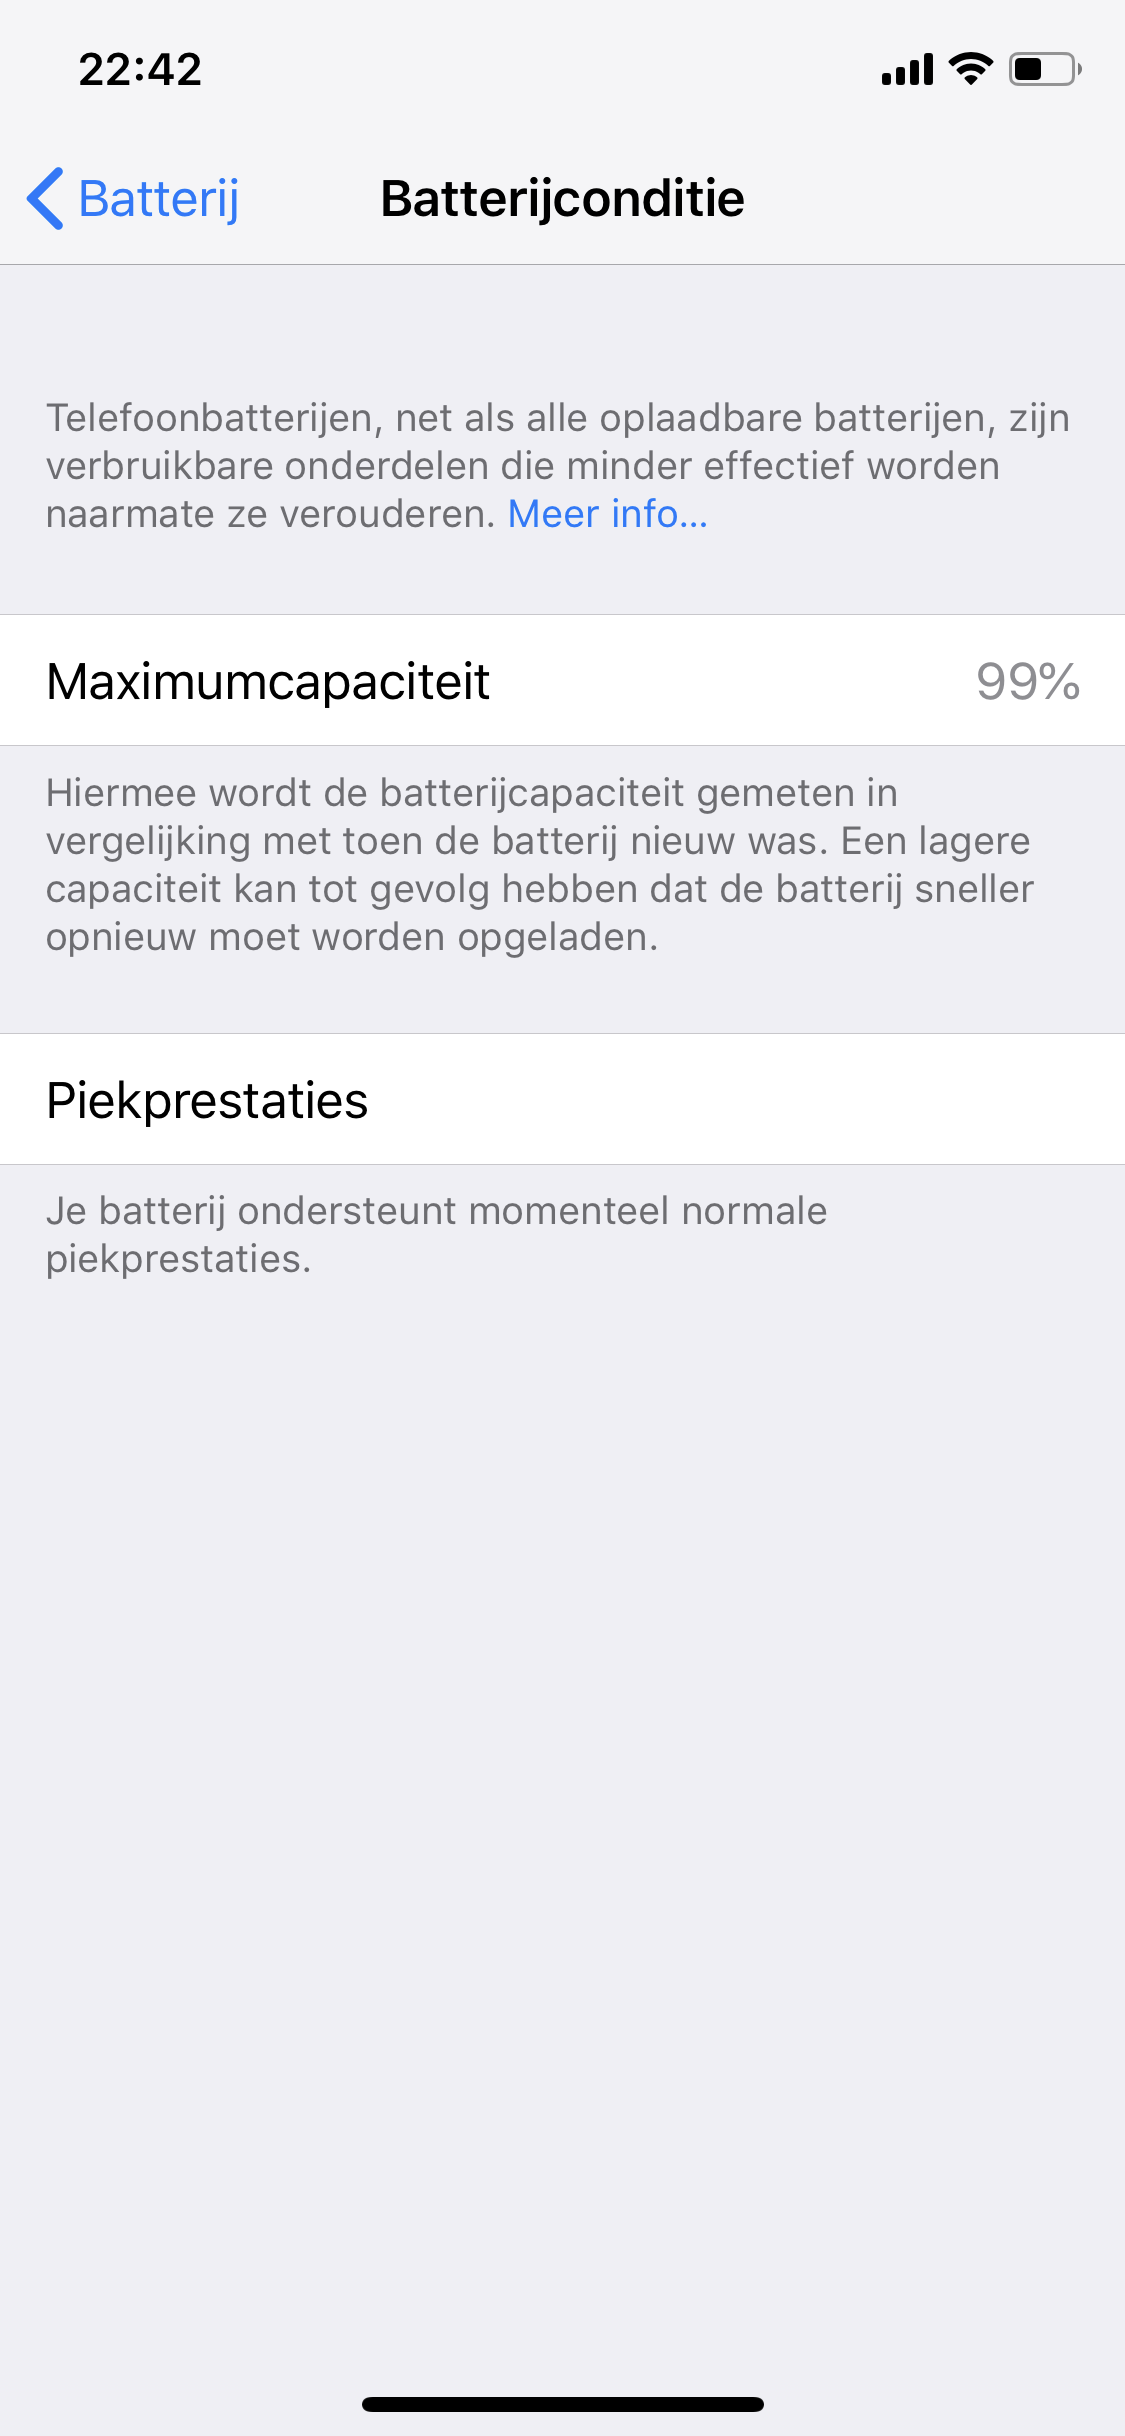 iPhone XS Battery health 99% normal? - Apple Community